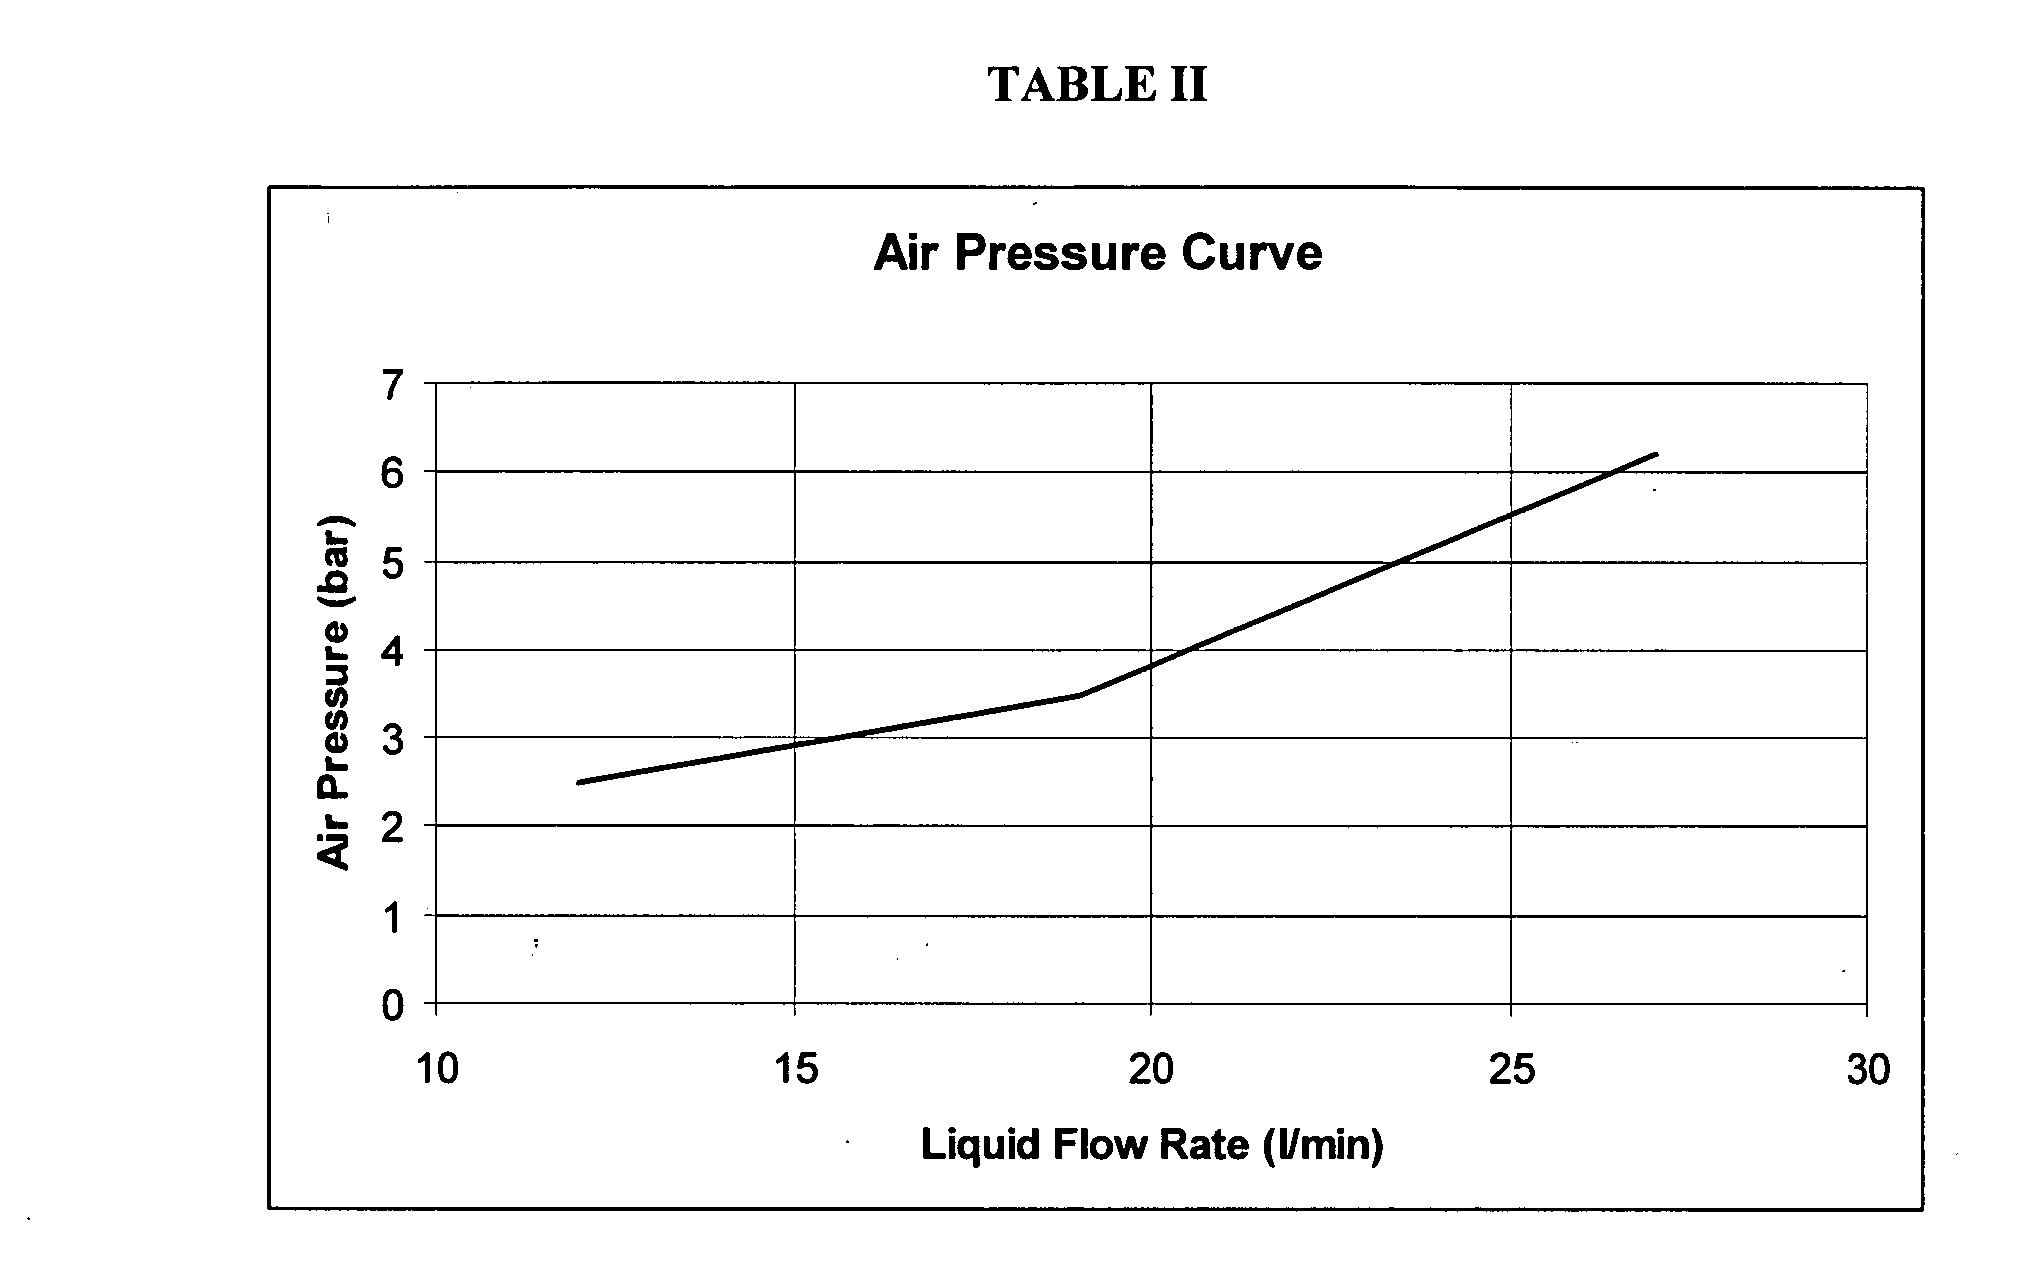 air pressure and flow rate relationship to time